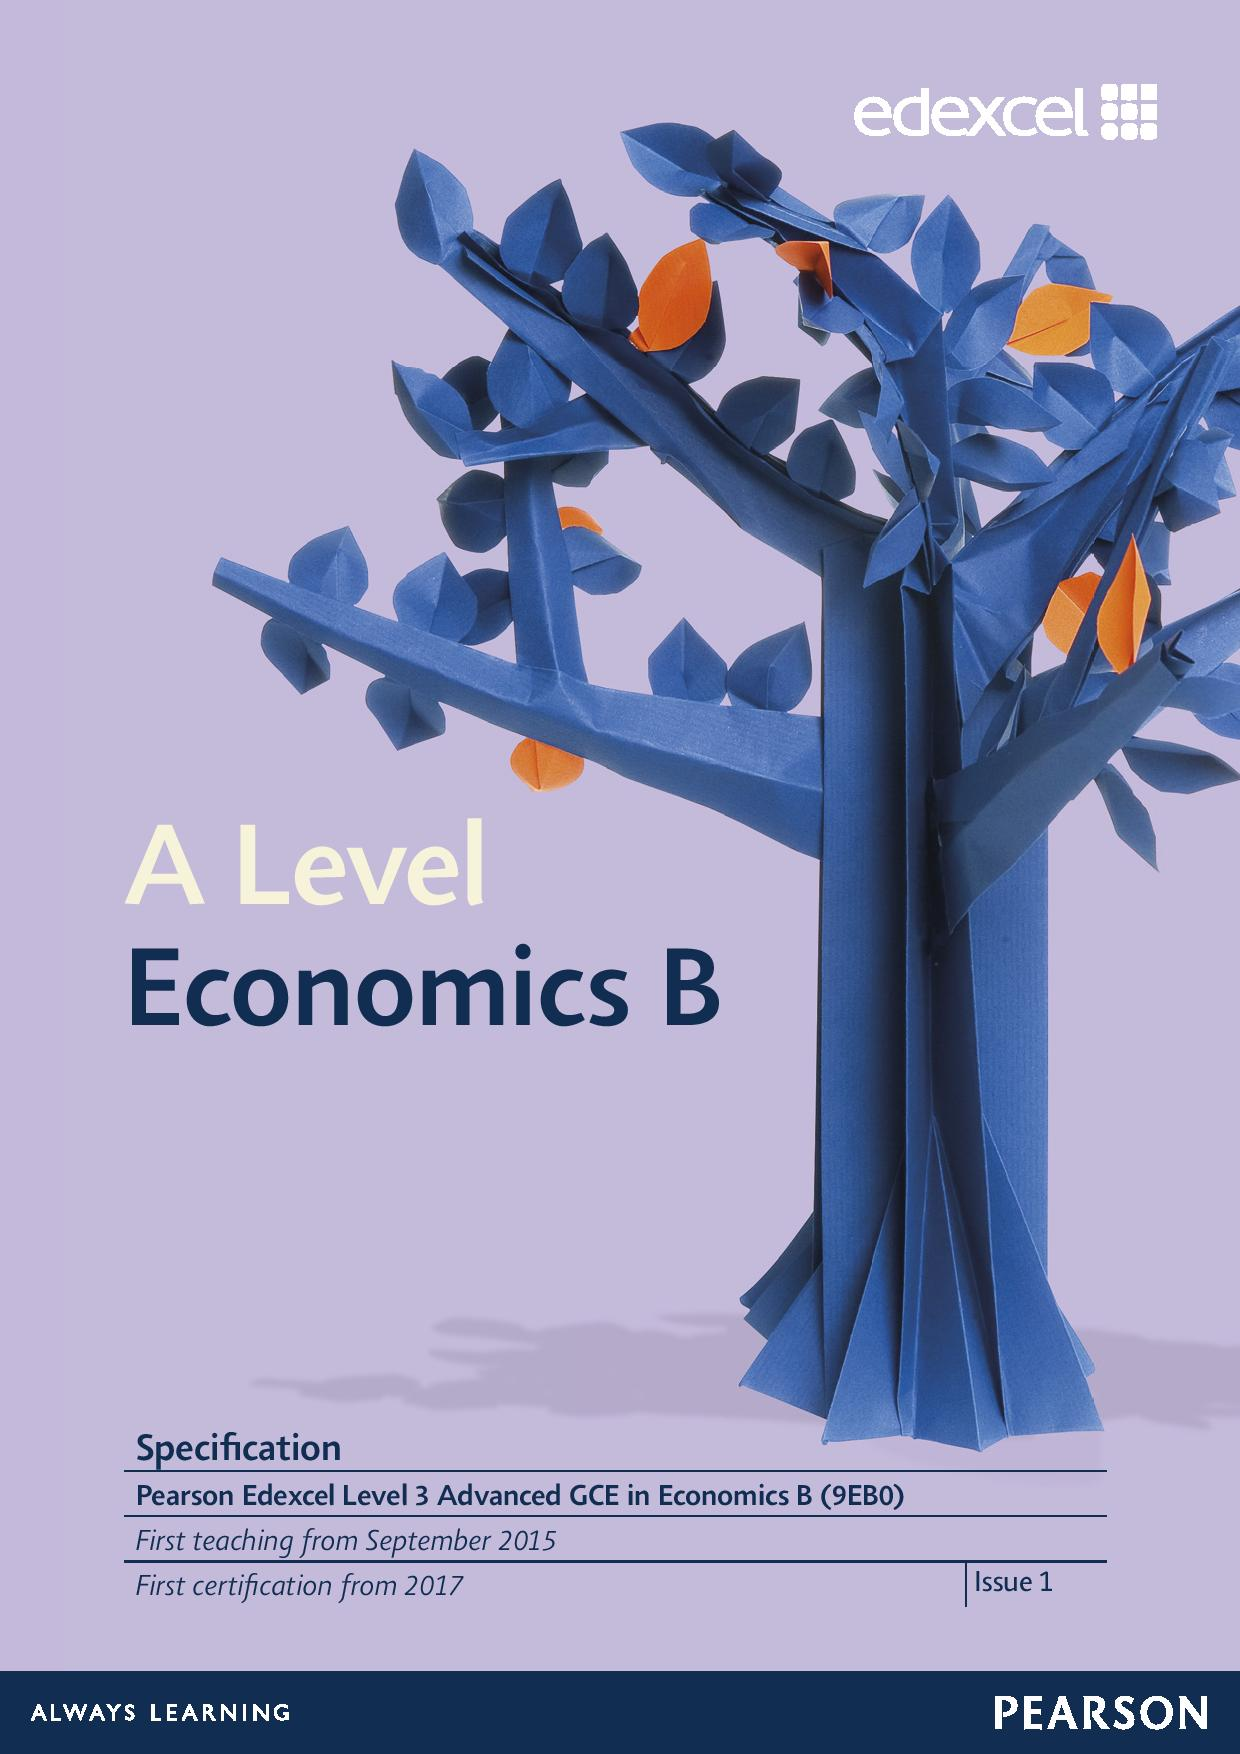 Link to Edexcel A level Economics B  specification page